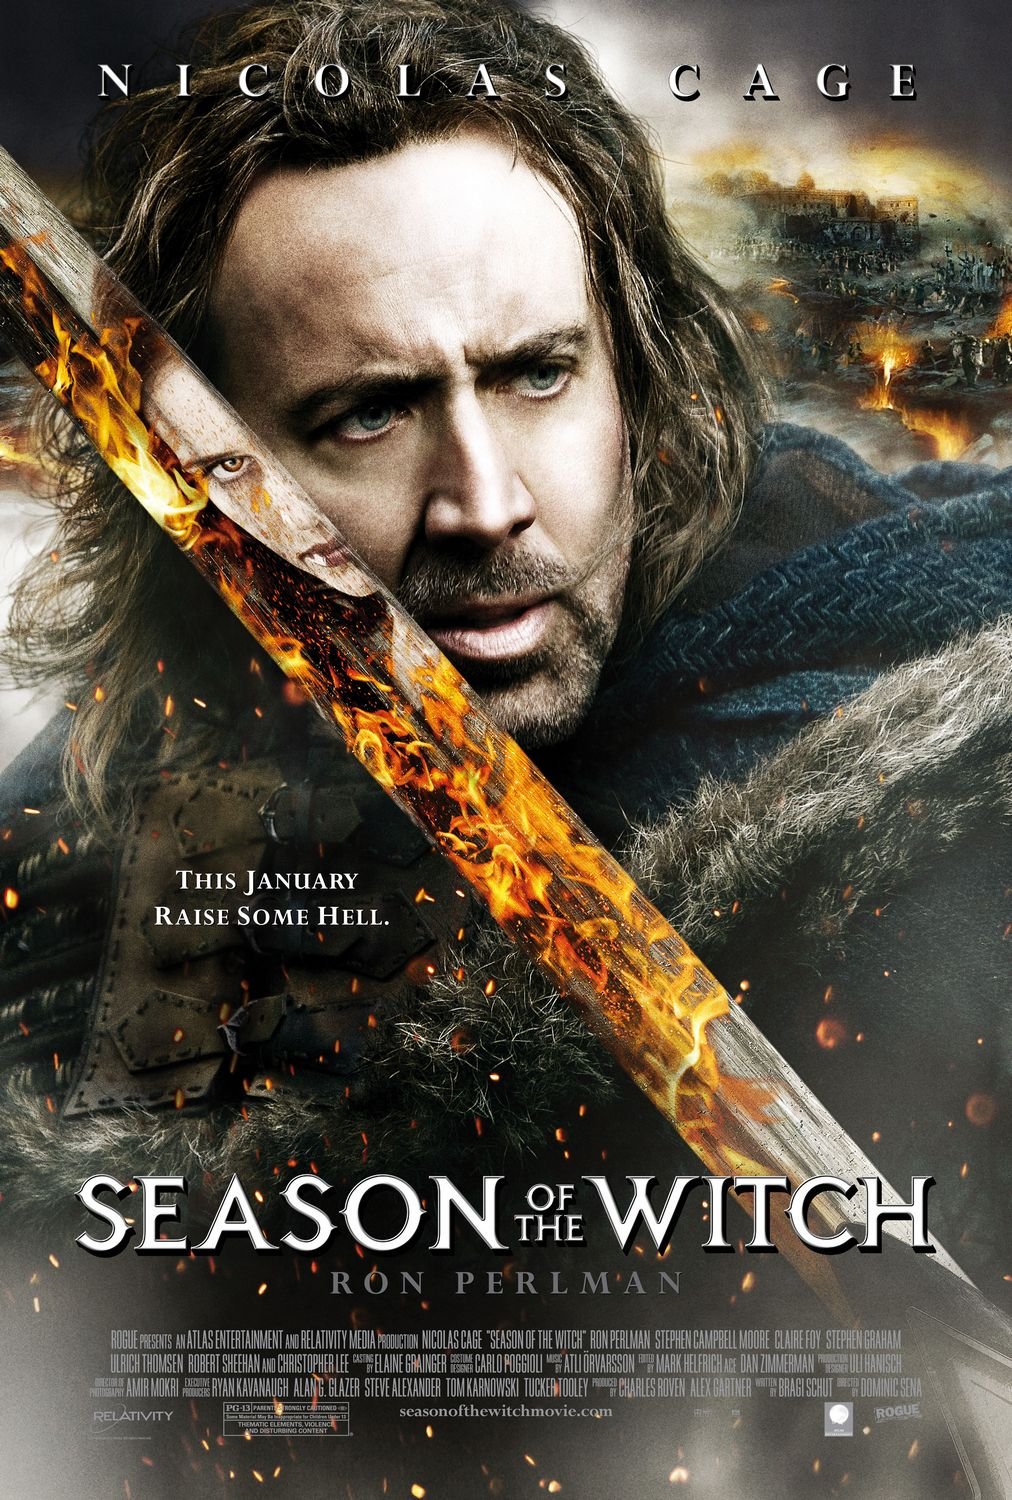 http://collider.com/wp-content/uploads/season_of_the_witch_movie_poster_01.jpg